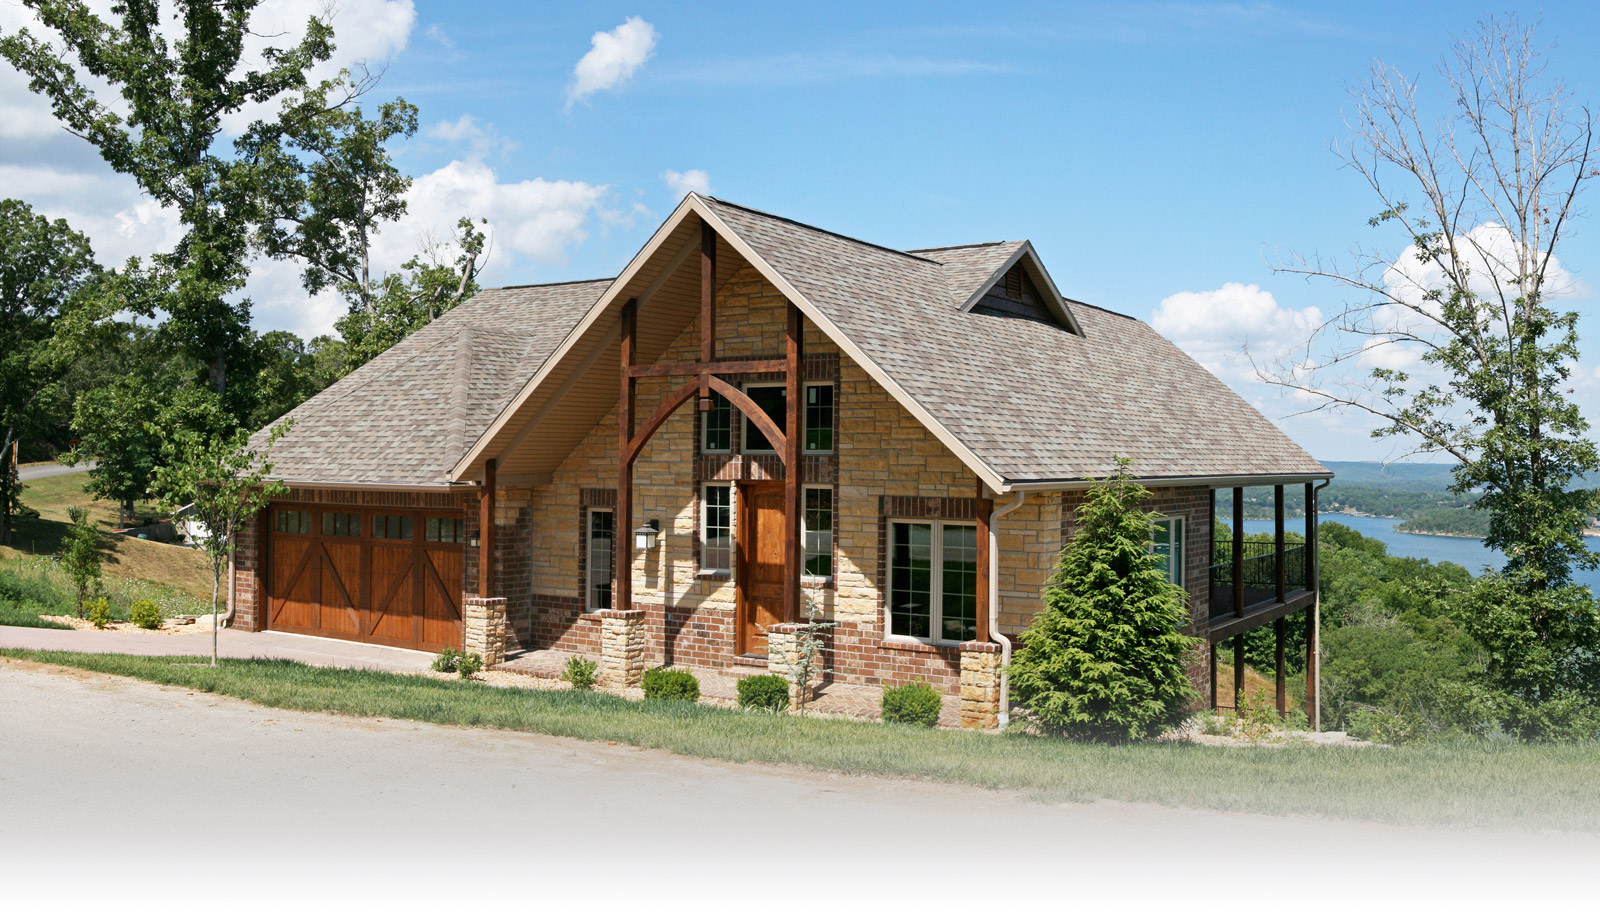 lodge rock table hot lodging marriott lake allow mo missouri tub on pets pet cabins branson friendly romantic in resorts